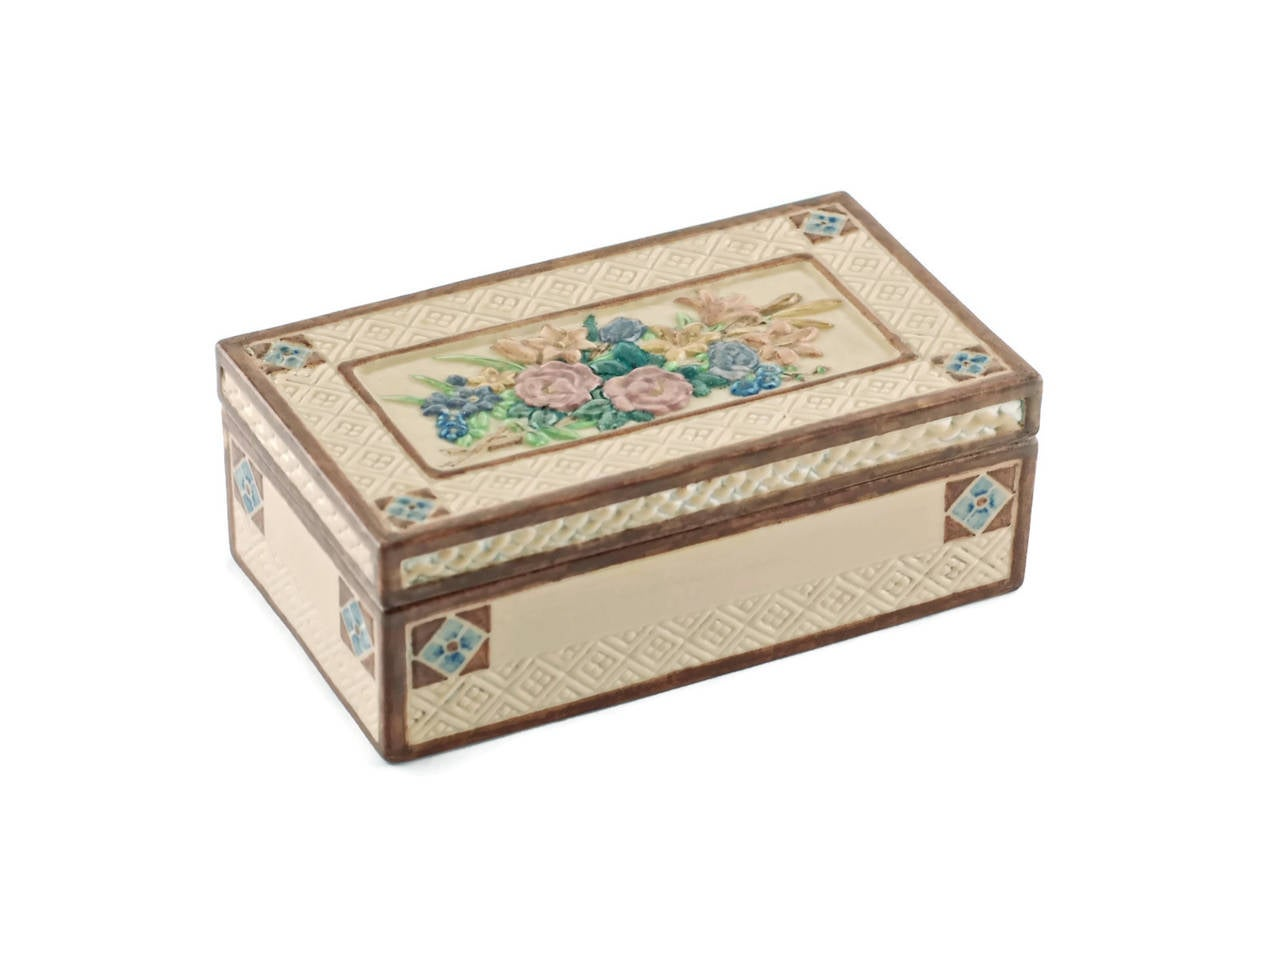 Signed Rookwood Pottery box by Sara Sax. This gorgeous ceramic lidded rectangular box was made by Rookwood Pottery of Cincinnati, Ohio, and decorated by renowned artist, Sara Sax. Rookwood has long been recognized as one of the premier producers of